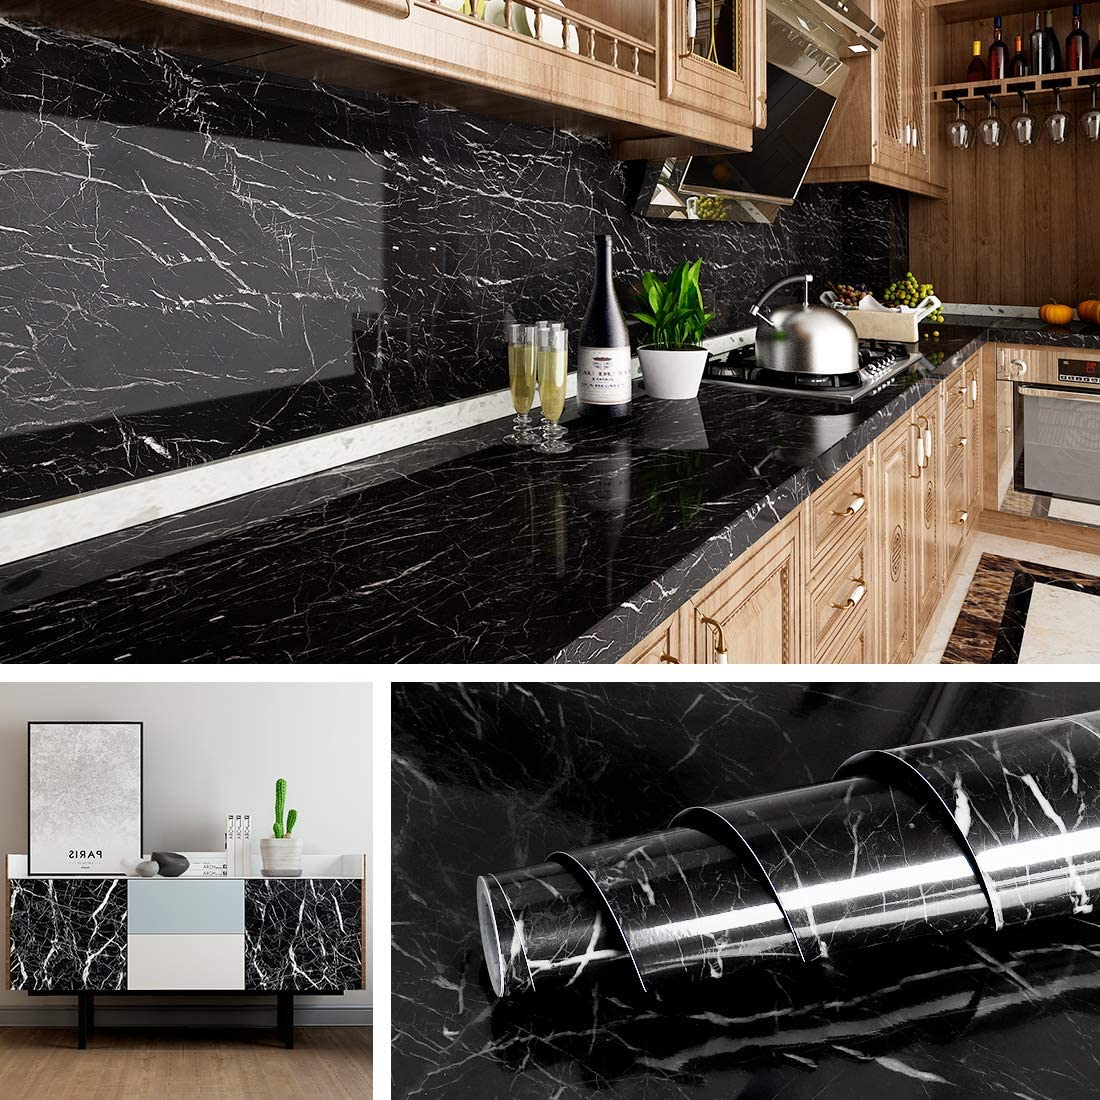 Livelynine Black Marble Wall Paper for Kitchen Counter Top Covers Peel and  Stick Wallpaper Bathroom Granite Contact Paper for Countertops Desk Table  ...